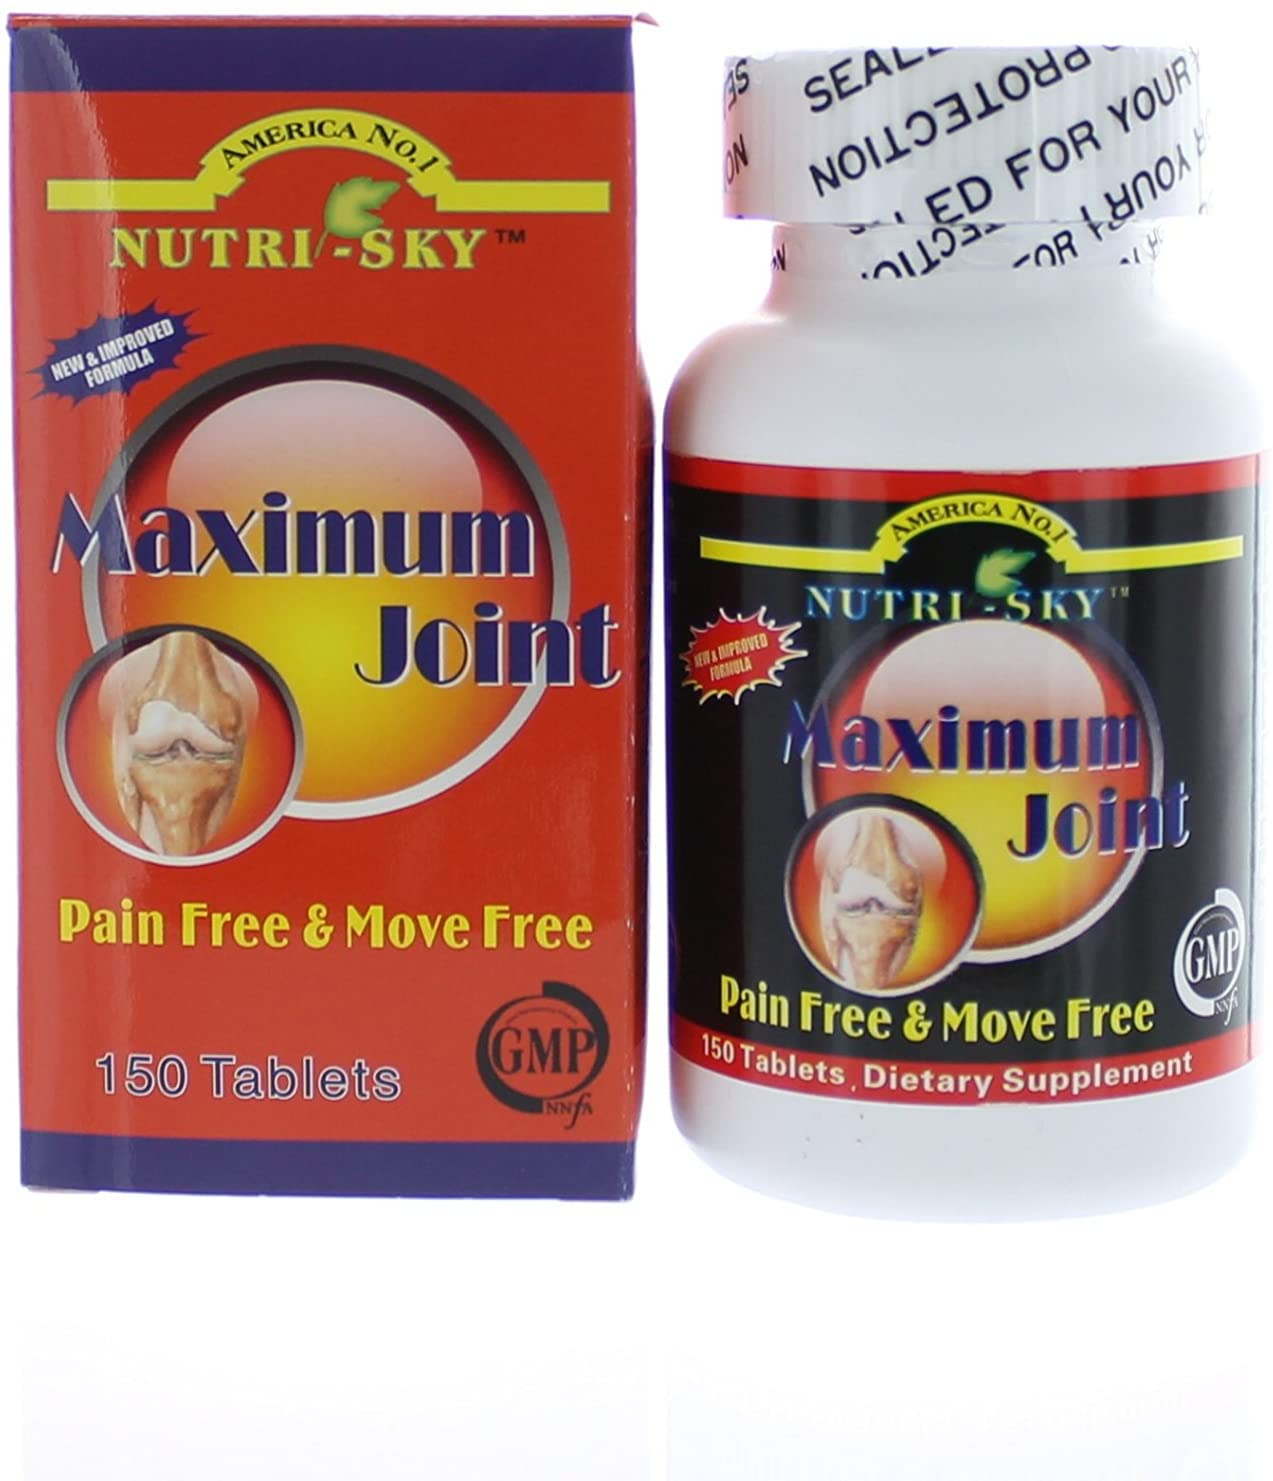 Nutri-sky Maximum Joint Joint Free Move Free 150 Tablets